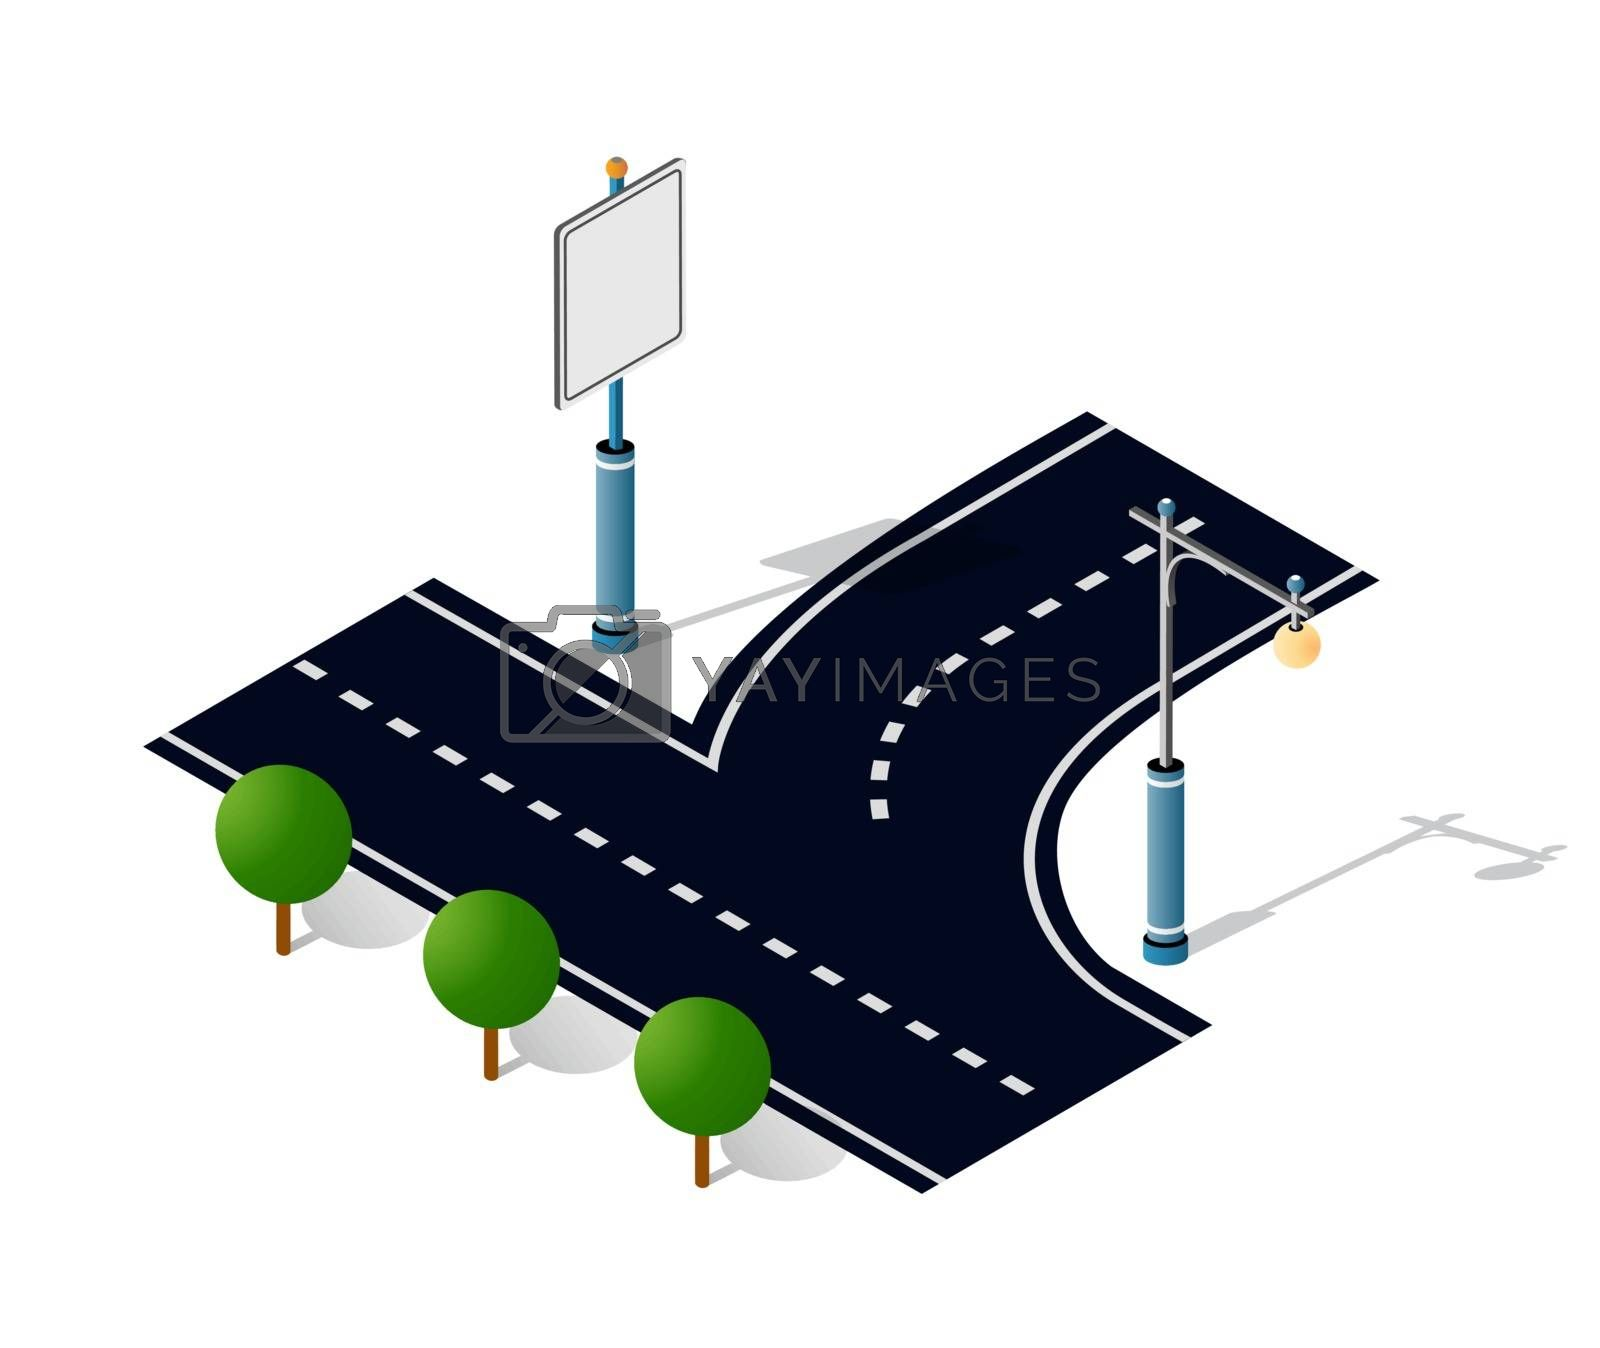 City Road Street Is a Highway with signs and trees. Isometric stock illustration of urban infrastructure.